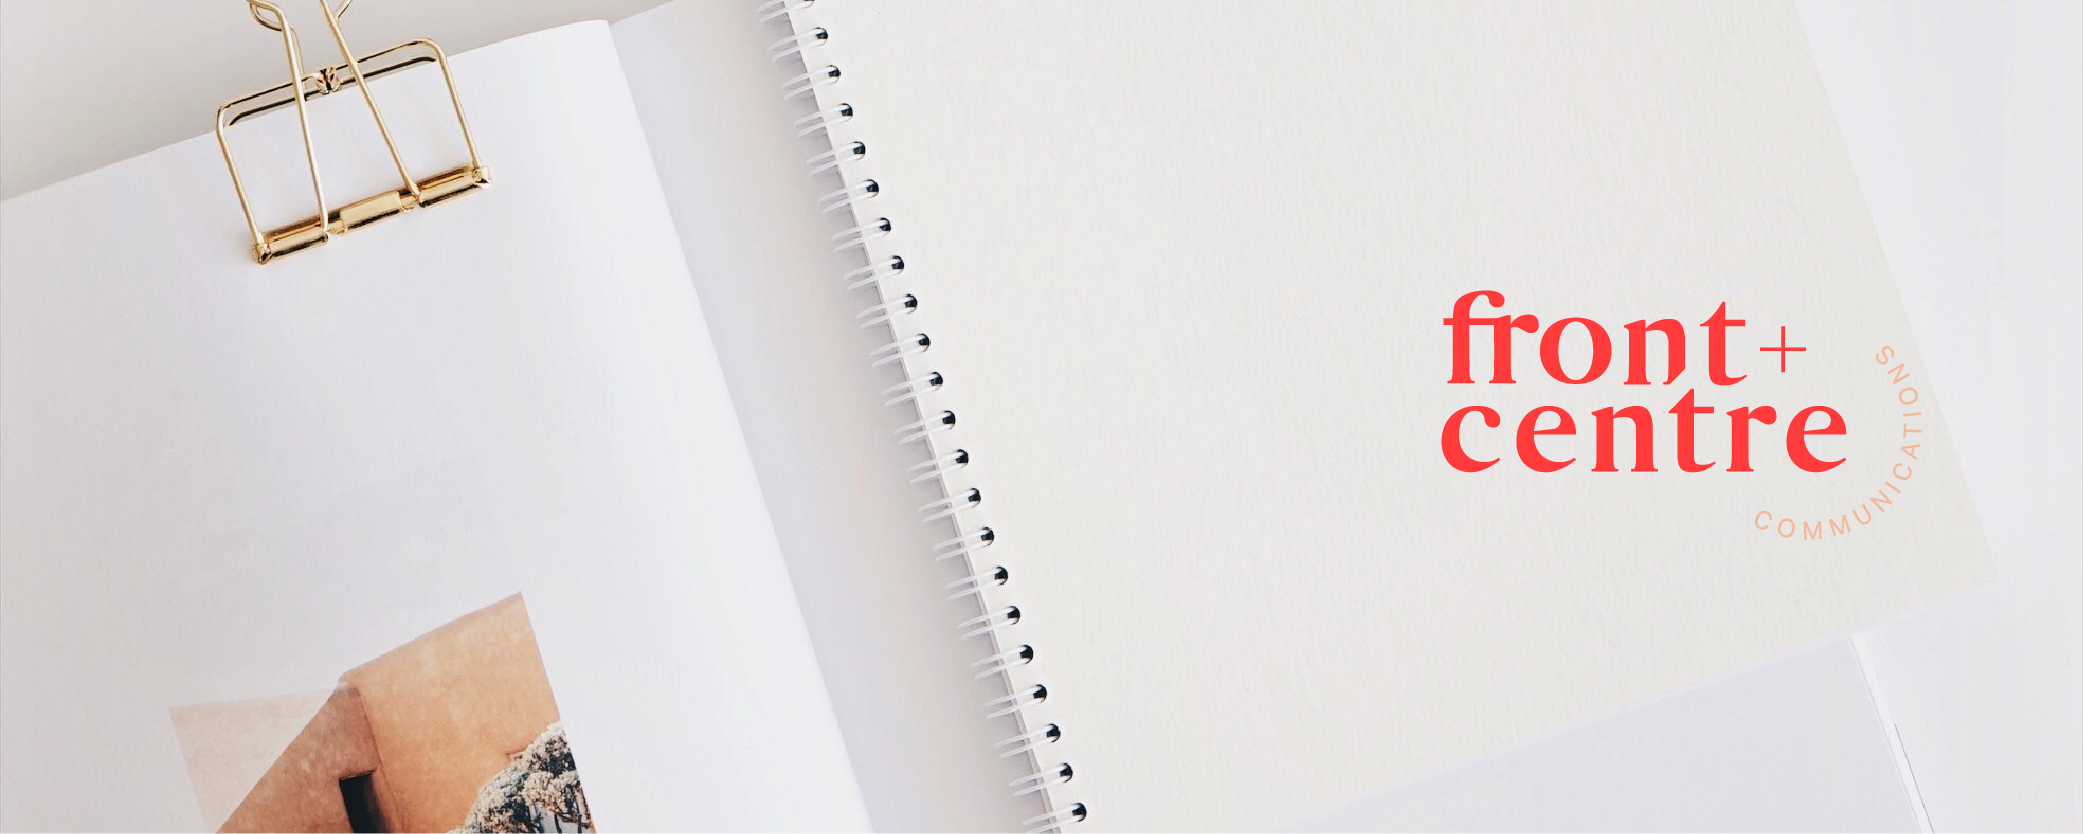 Front + Centre logo in red on a photo of a spiral bound notebook that is at an angle